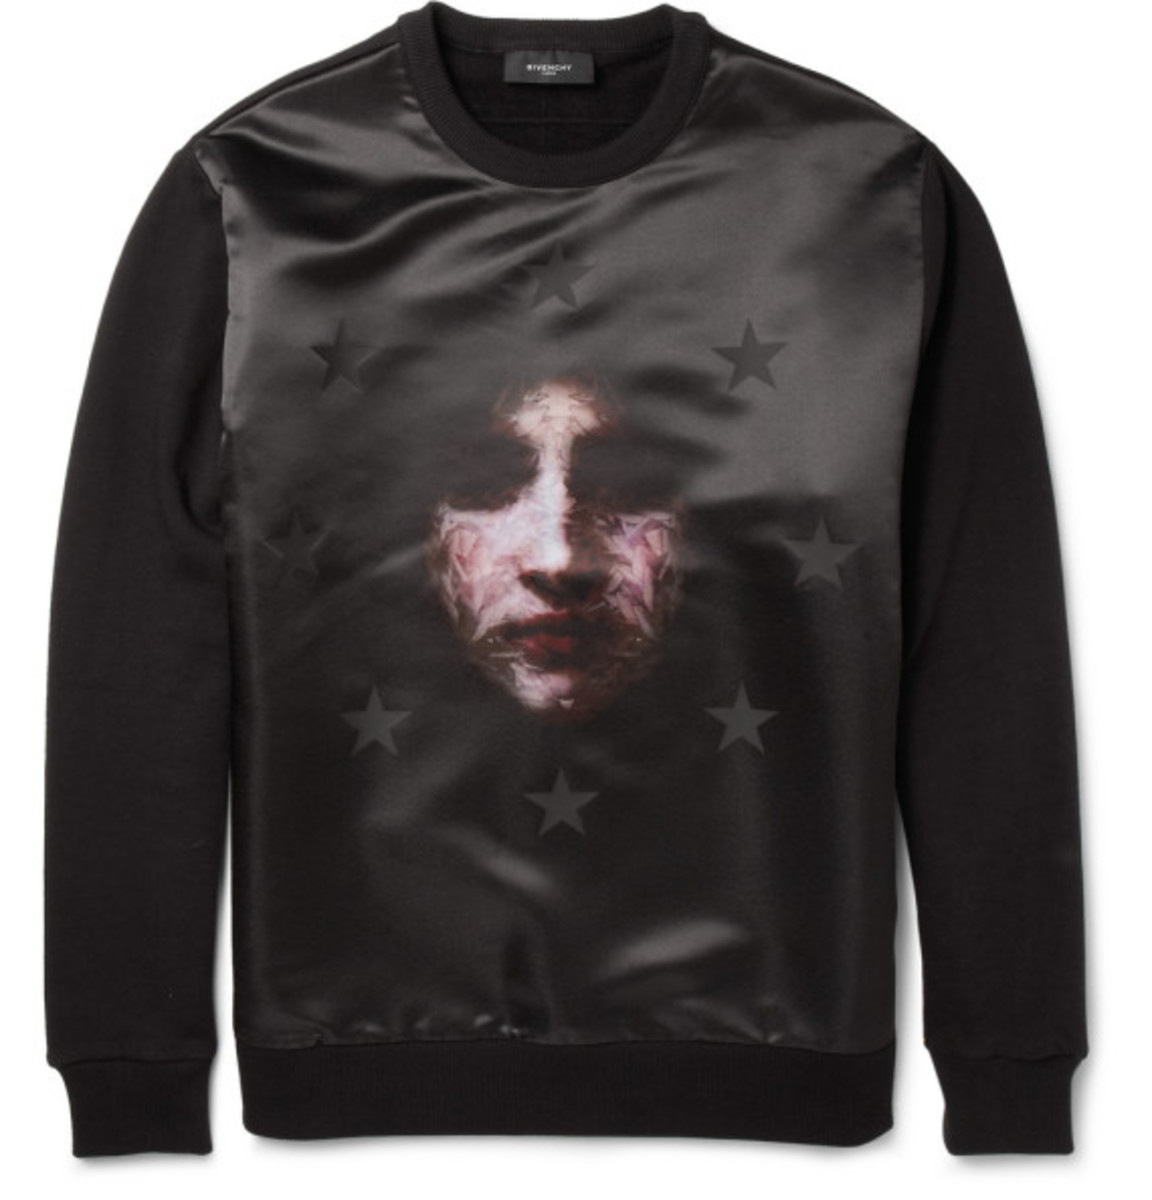 givenchy-madonna-printed-satin-and-jersey-sweatshirt-02